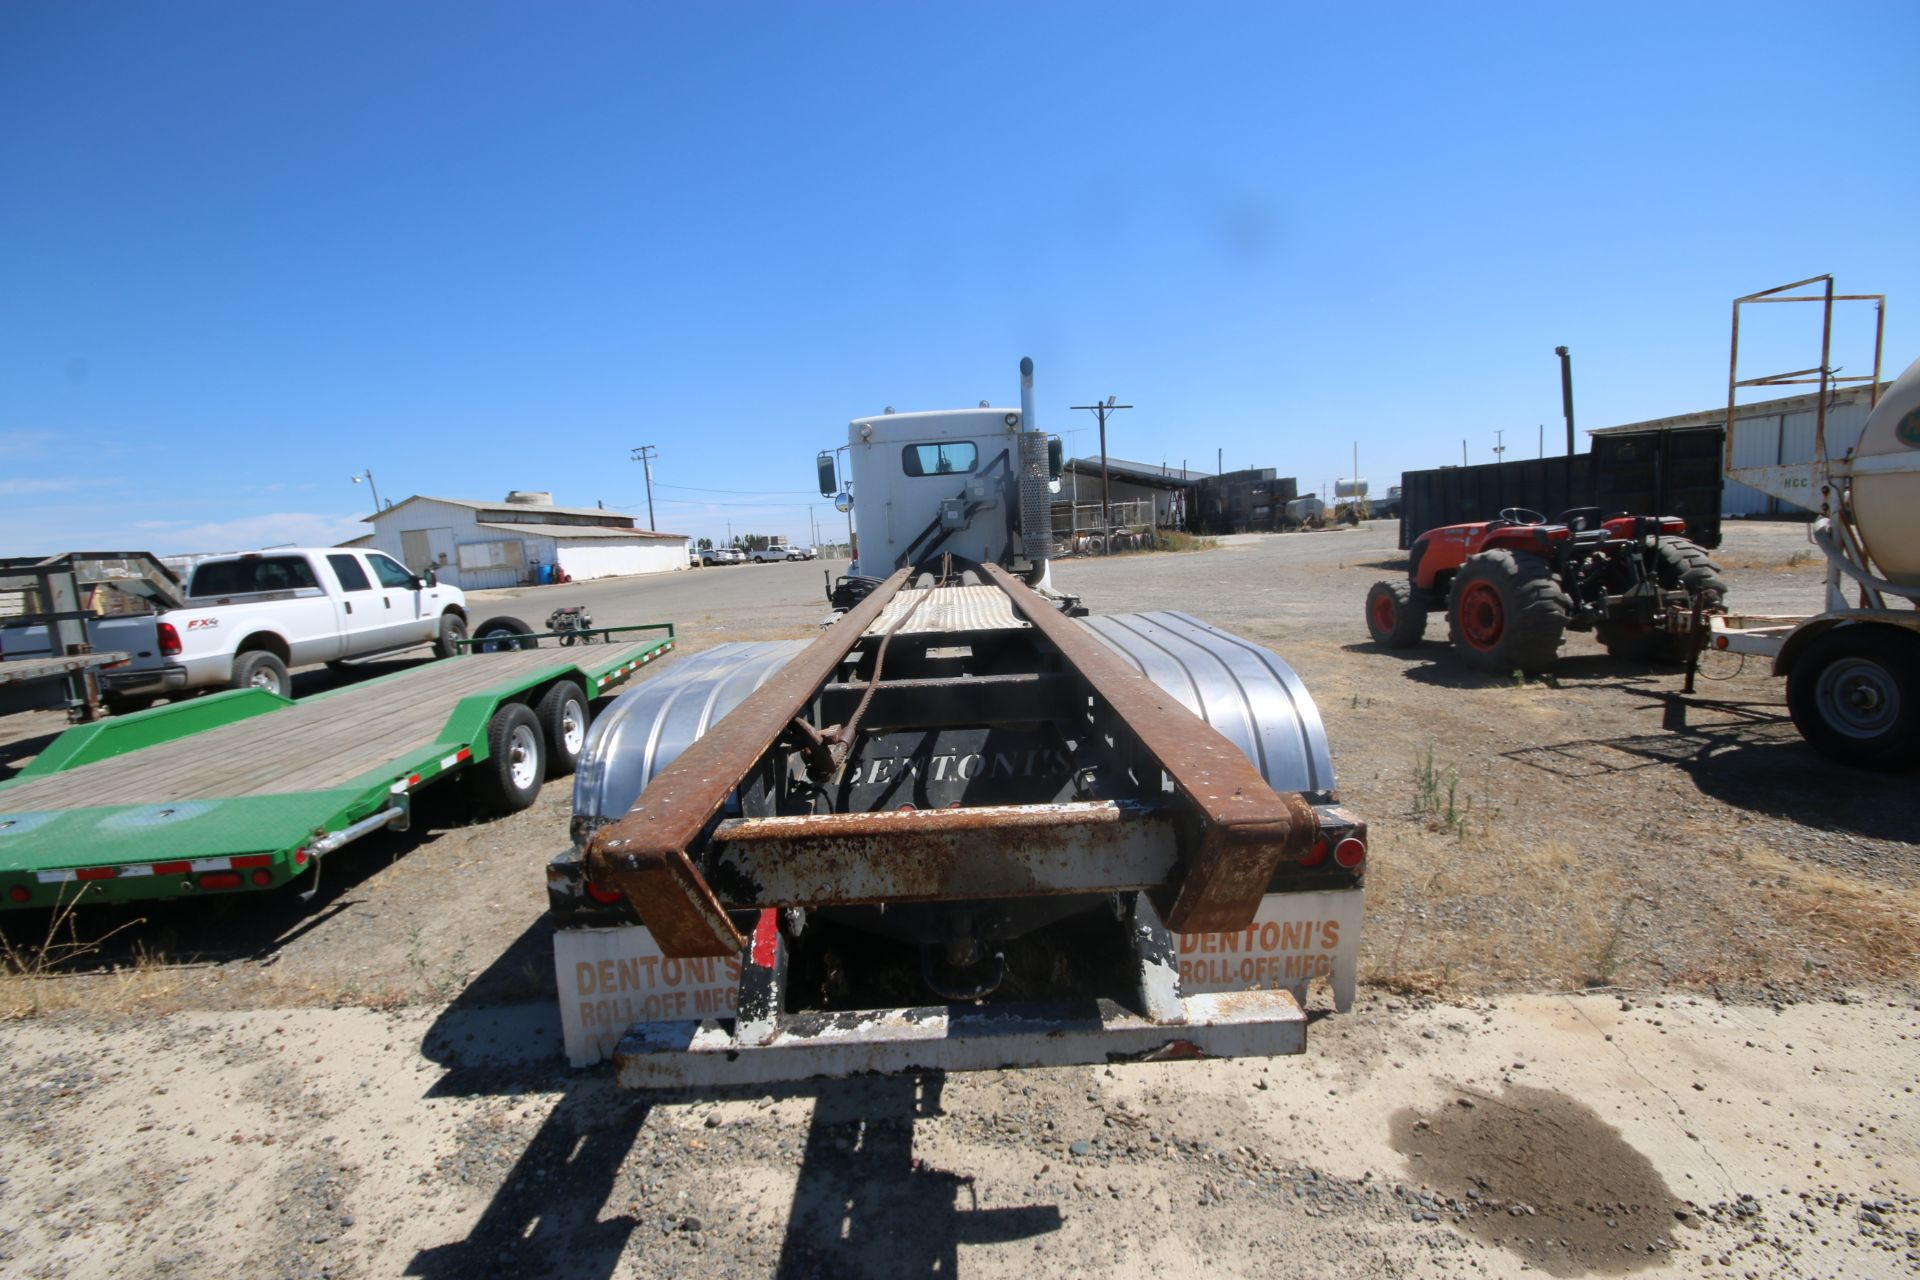 1996 Kenworth 3-Axle Roll-Off Straight Truck, VIN #: 1XKDDB9XOTS687107, with 24,722 Miles, License - Image 5 of 30